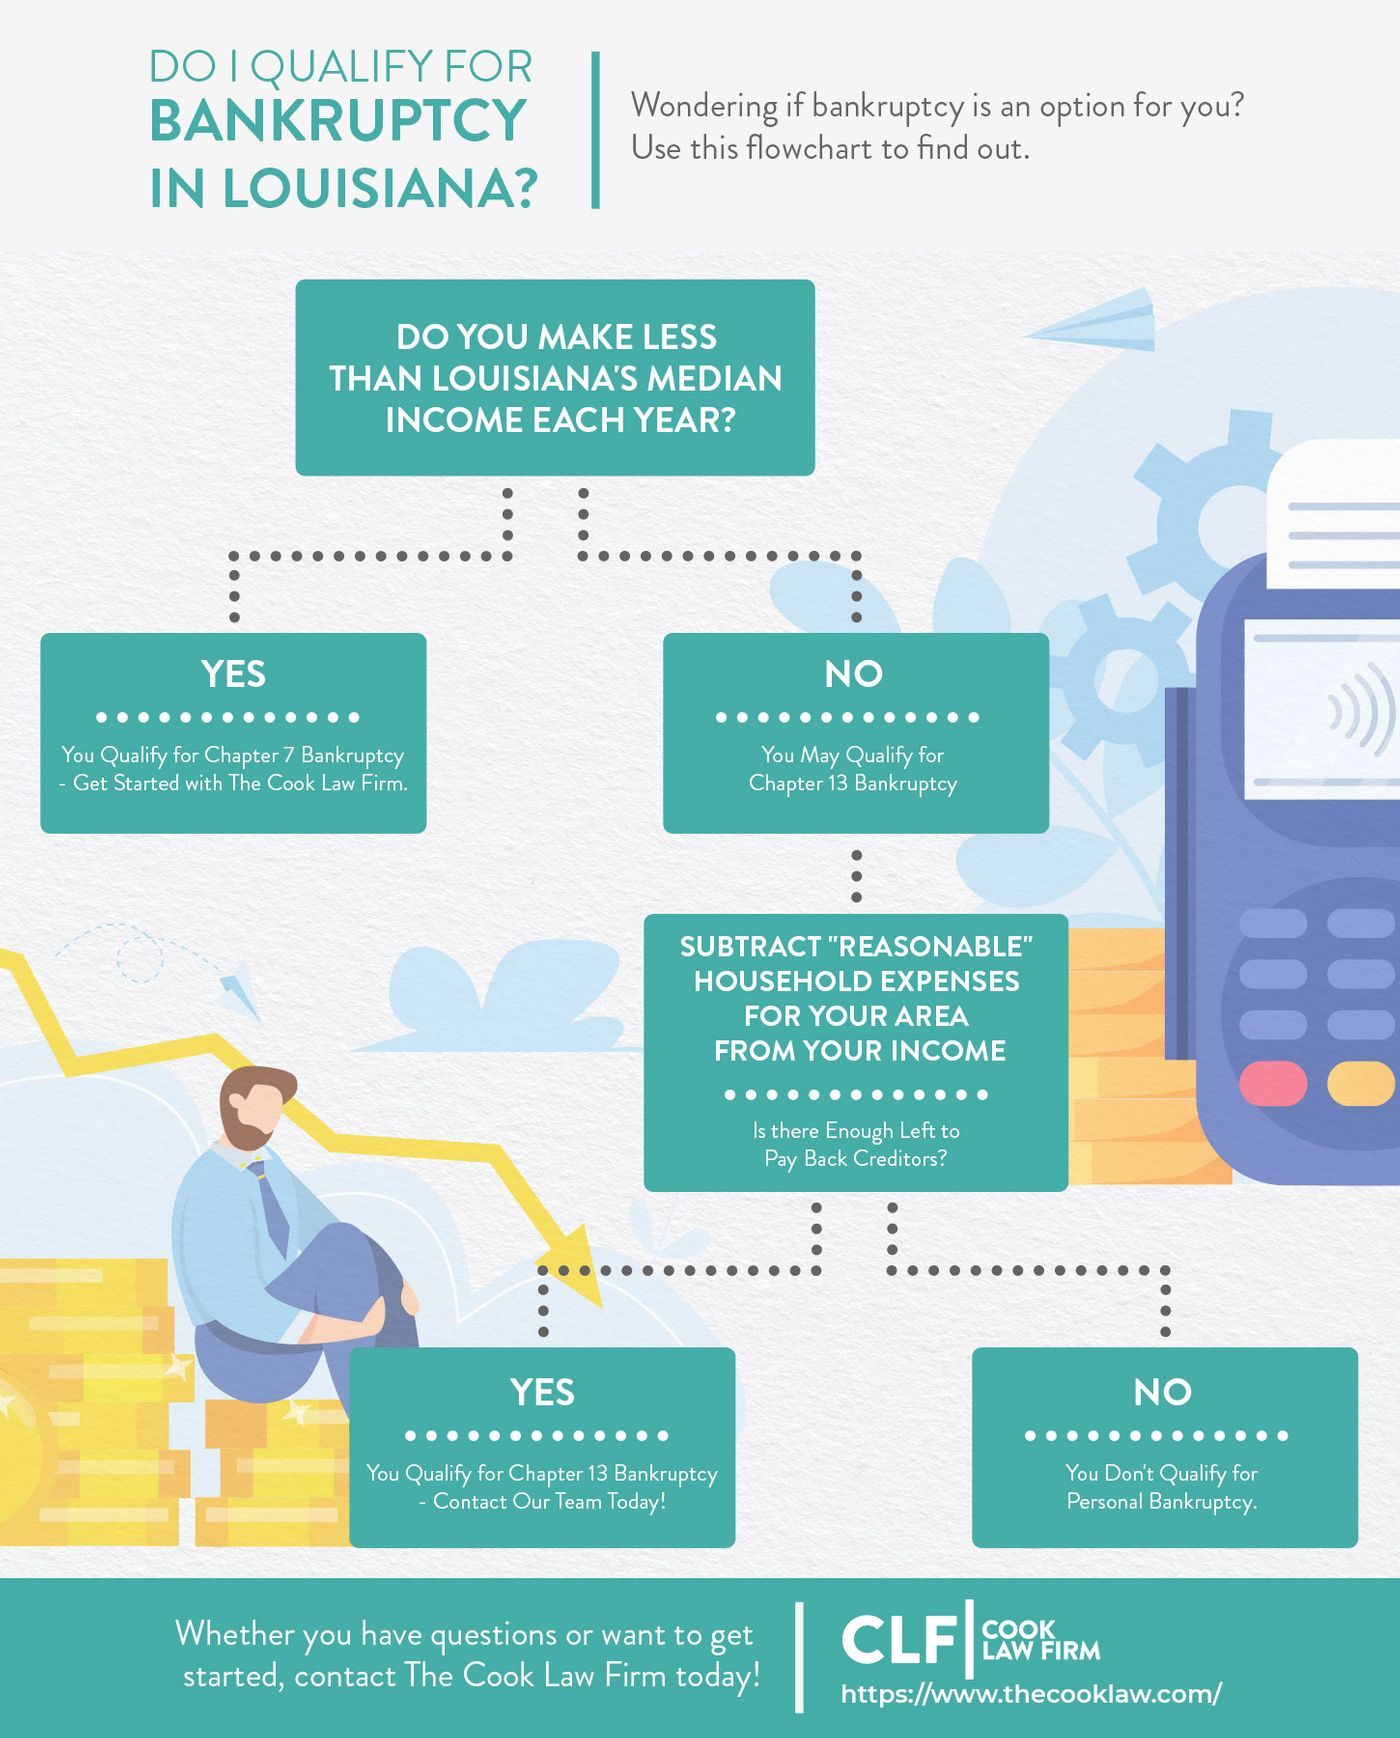 Do I Qualify for Bankruptcy in Louisiana Infographic.jpg